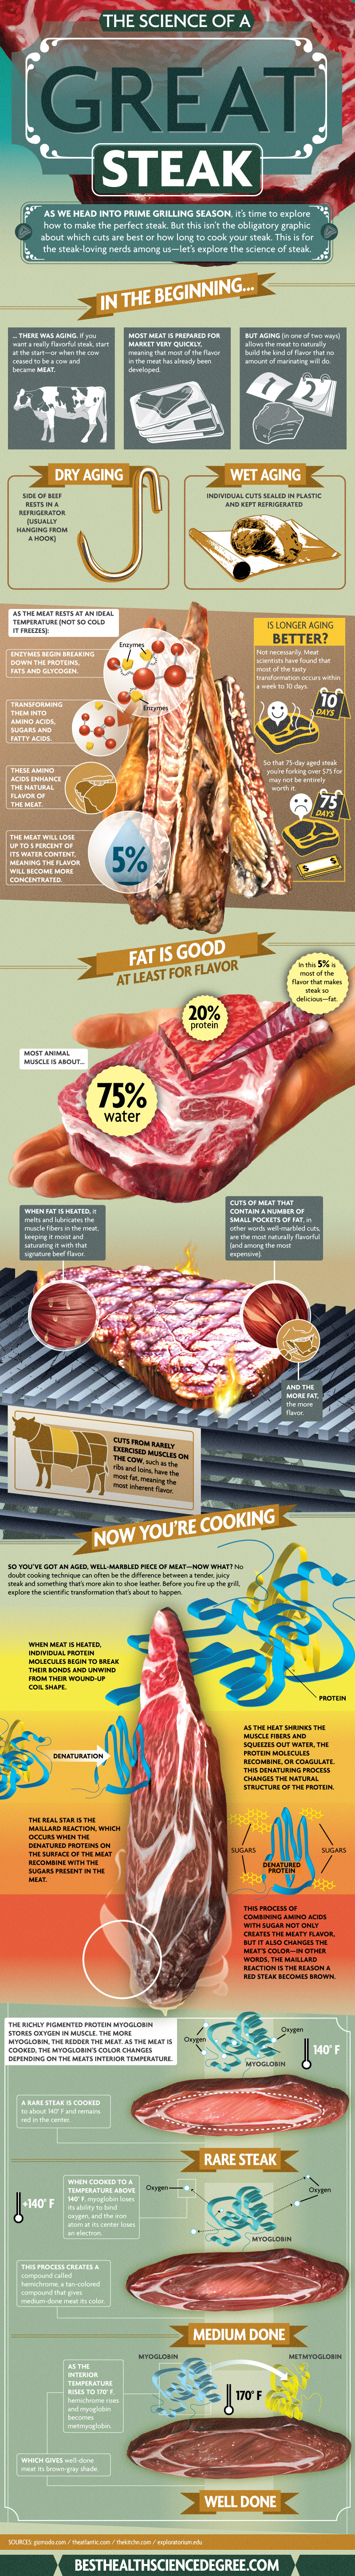 Making a Great Steak The Science Behind Making a Great Steak